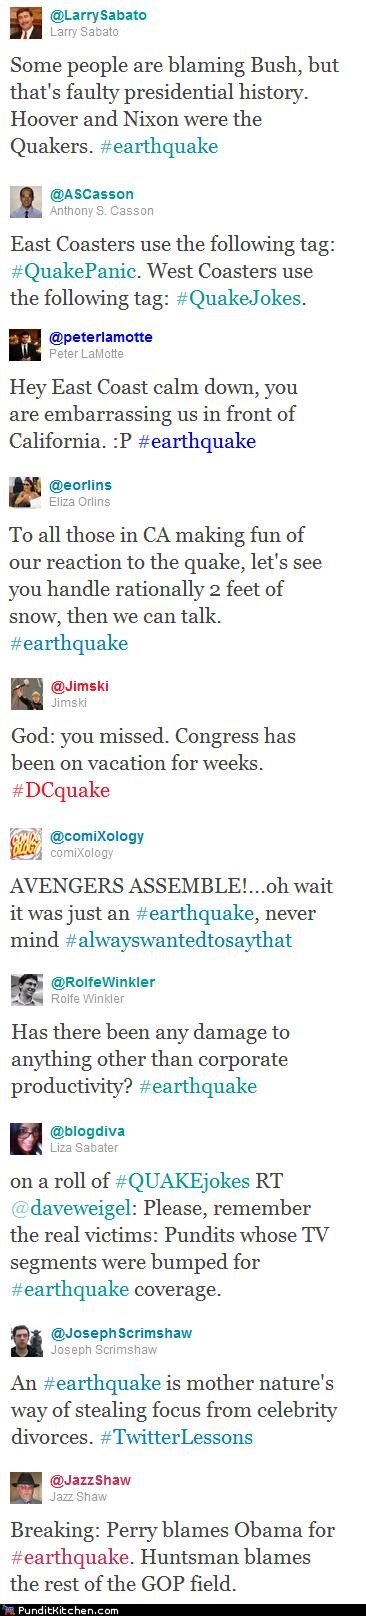 earthquake,east coast,new york city,political pictures,twitter,twitterpated,virginia,washington dc